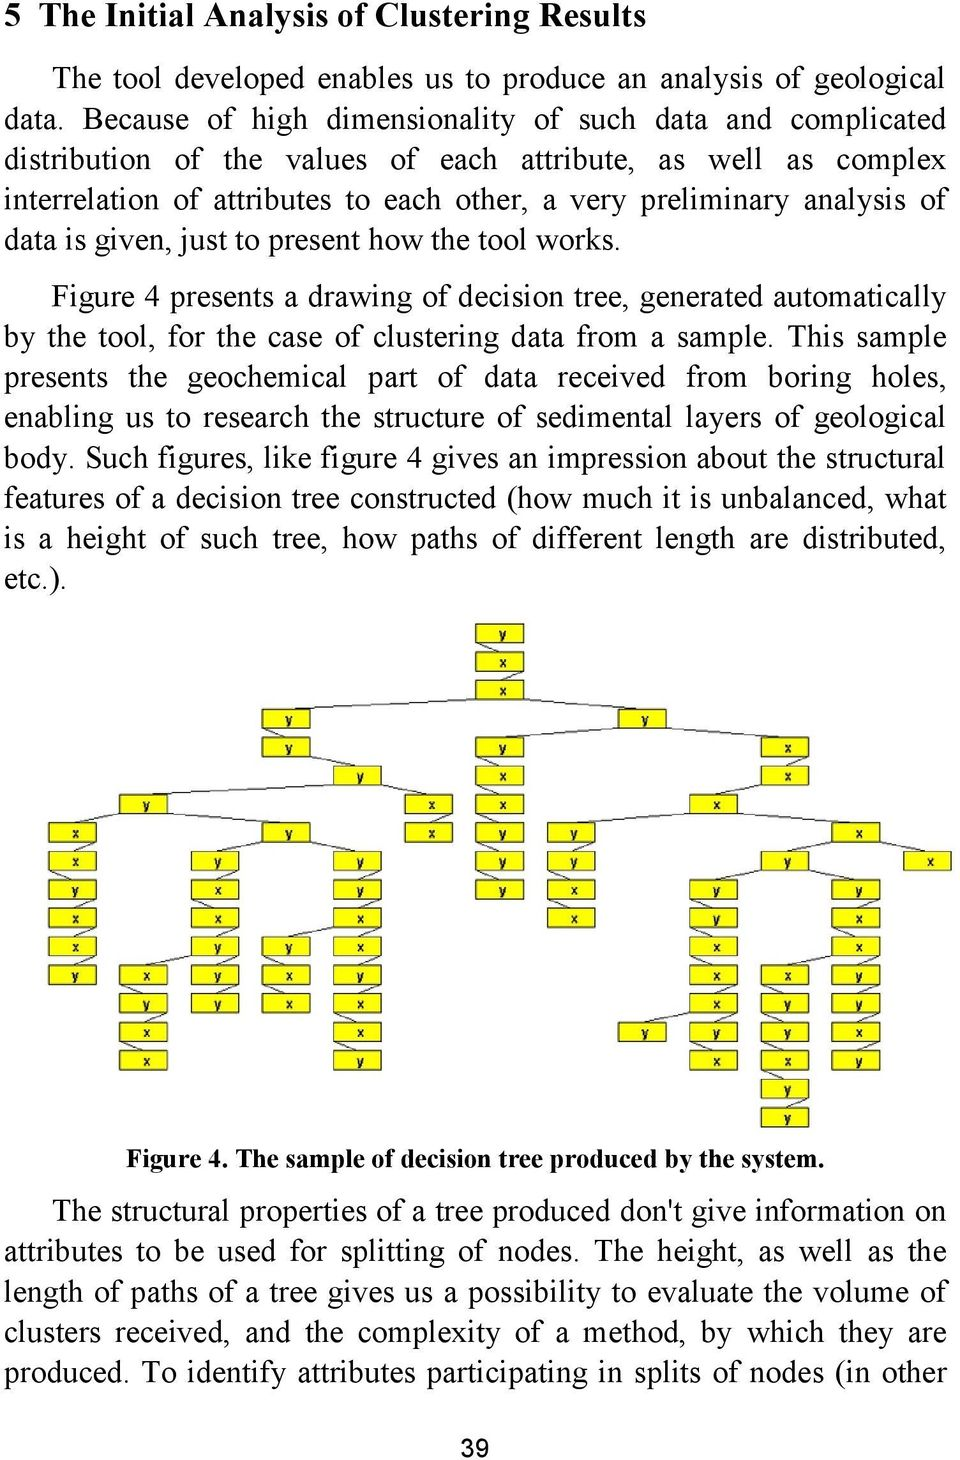 data is given, just to present how the tool works. Figure 4 presents a drawing of decision tree, generated automatically by the tool, for the case of clustering data from a sample.